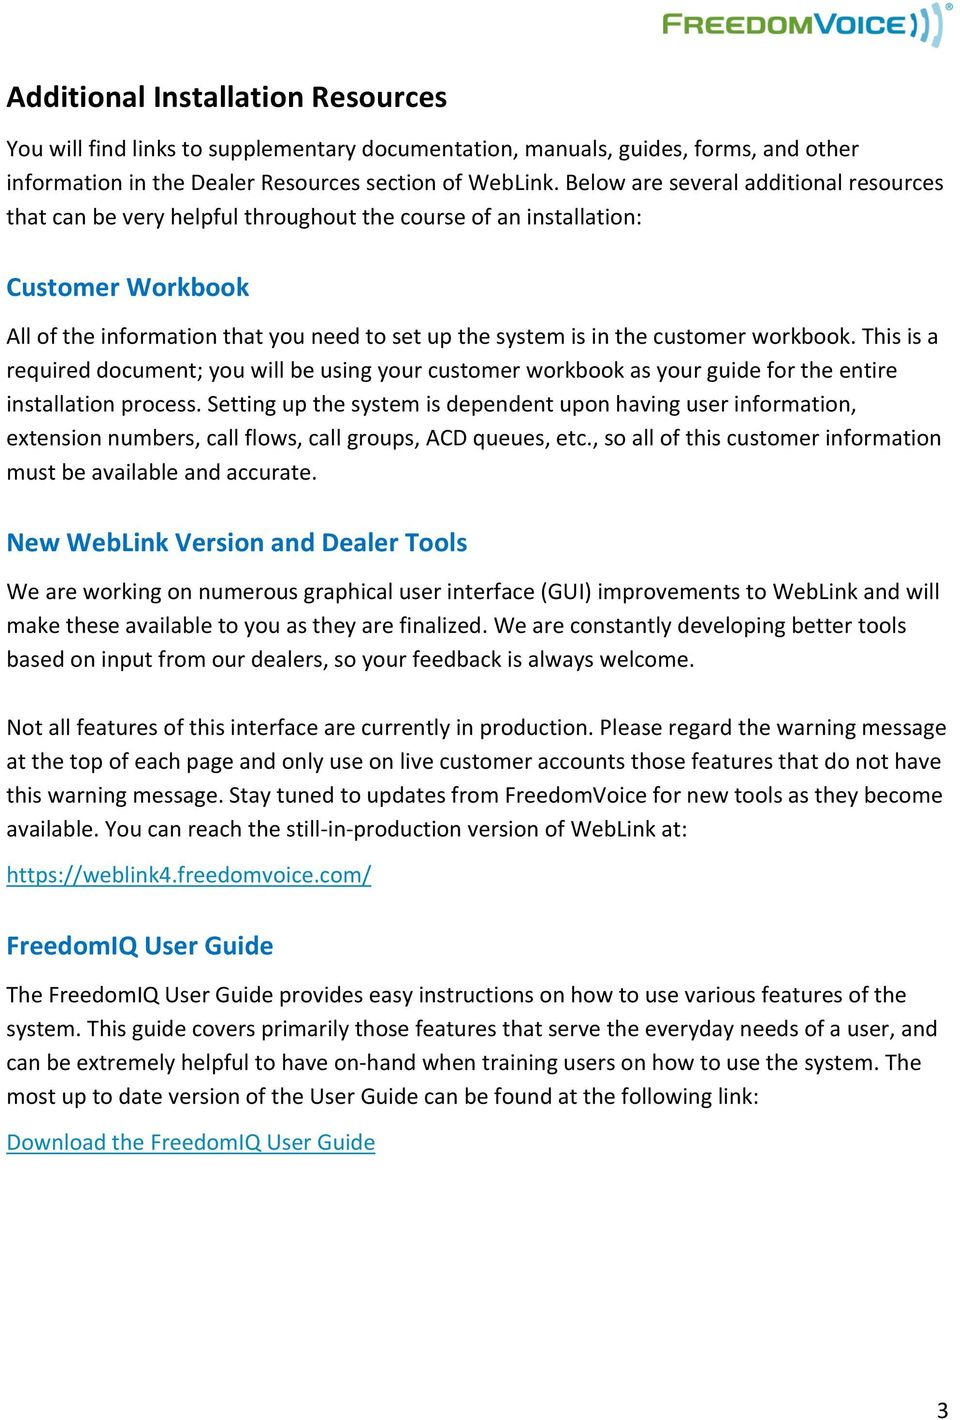 customer workbook. This is a required document; you will be using your customer workbook as your guide for the entire installation process.